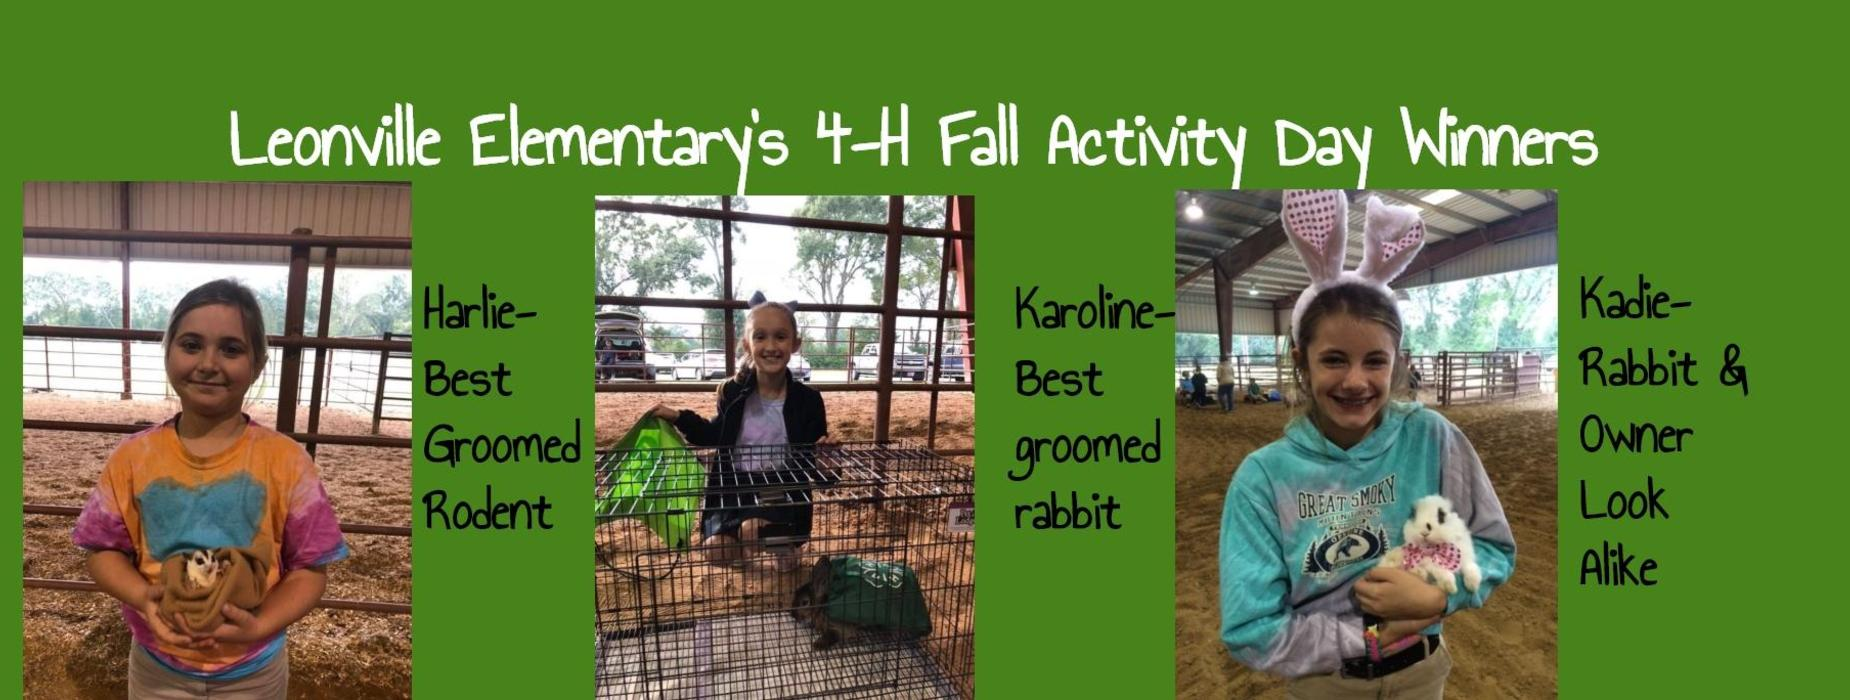 Leonville Elementary's 4-H Fall Activity Day Winners